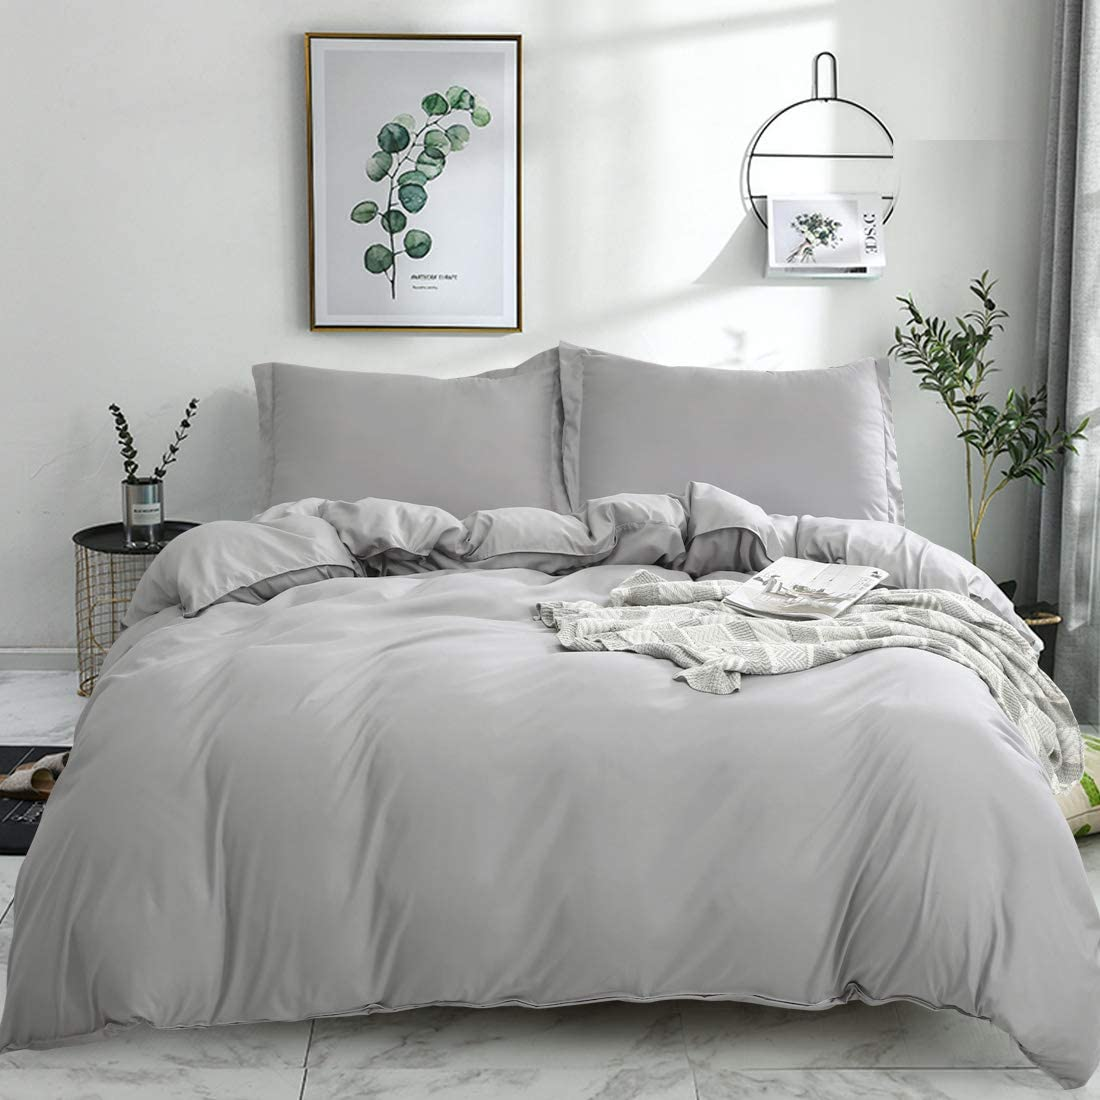 Balichun Duvet Cover Set Queen Size Gray Premium with Zipper Closure Hotel Quality Wrinkle and Fade Resistant Ultra Soft -3 Piece-1 Microfiber Duvet Cover Matching 2 Pillow Shams (Gray, Full/Queen)